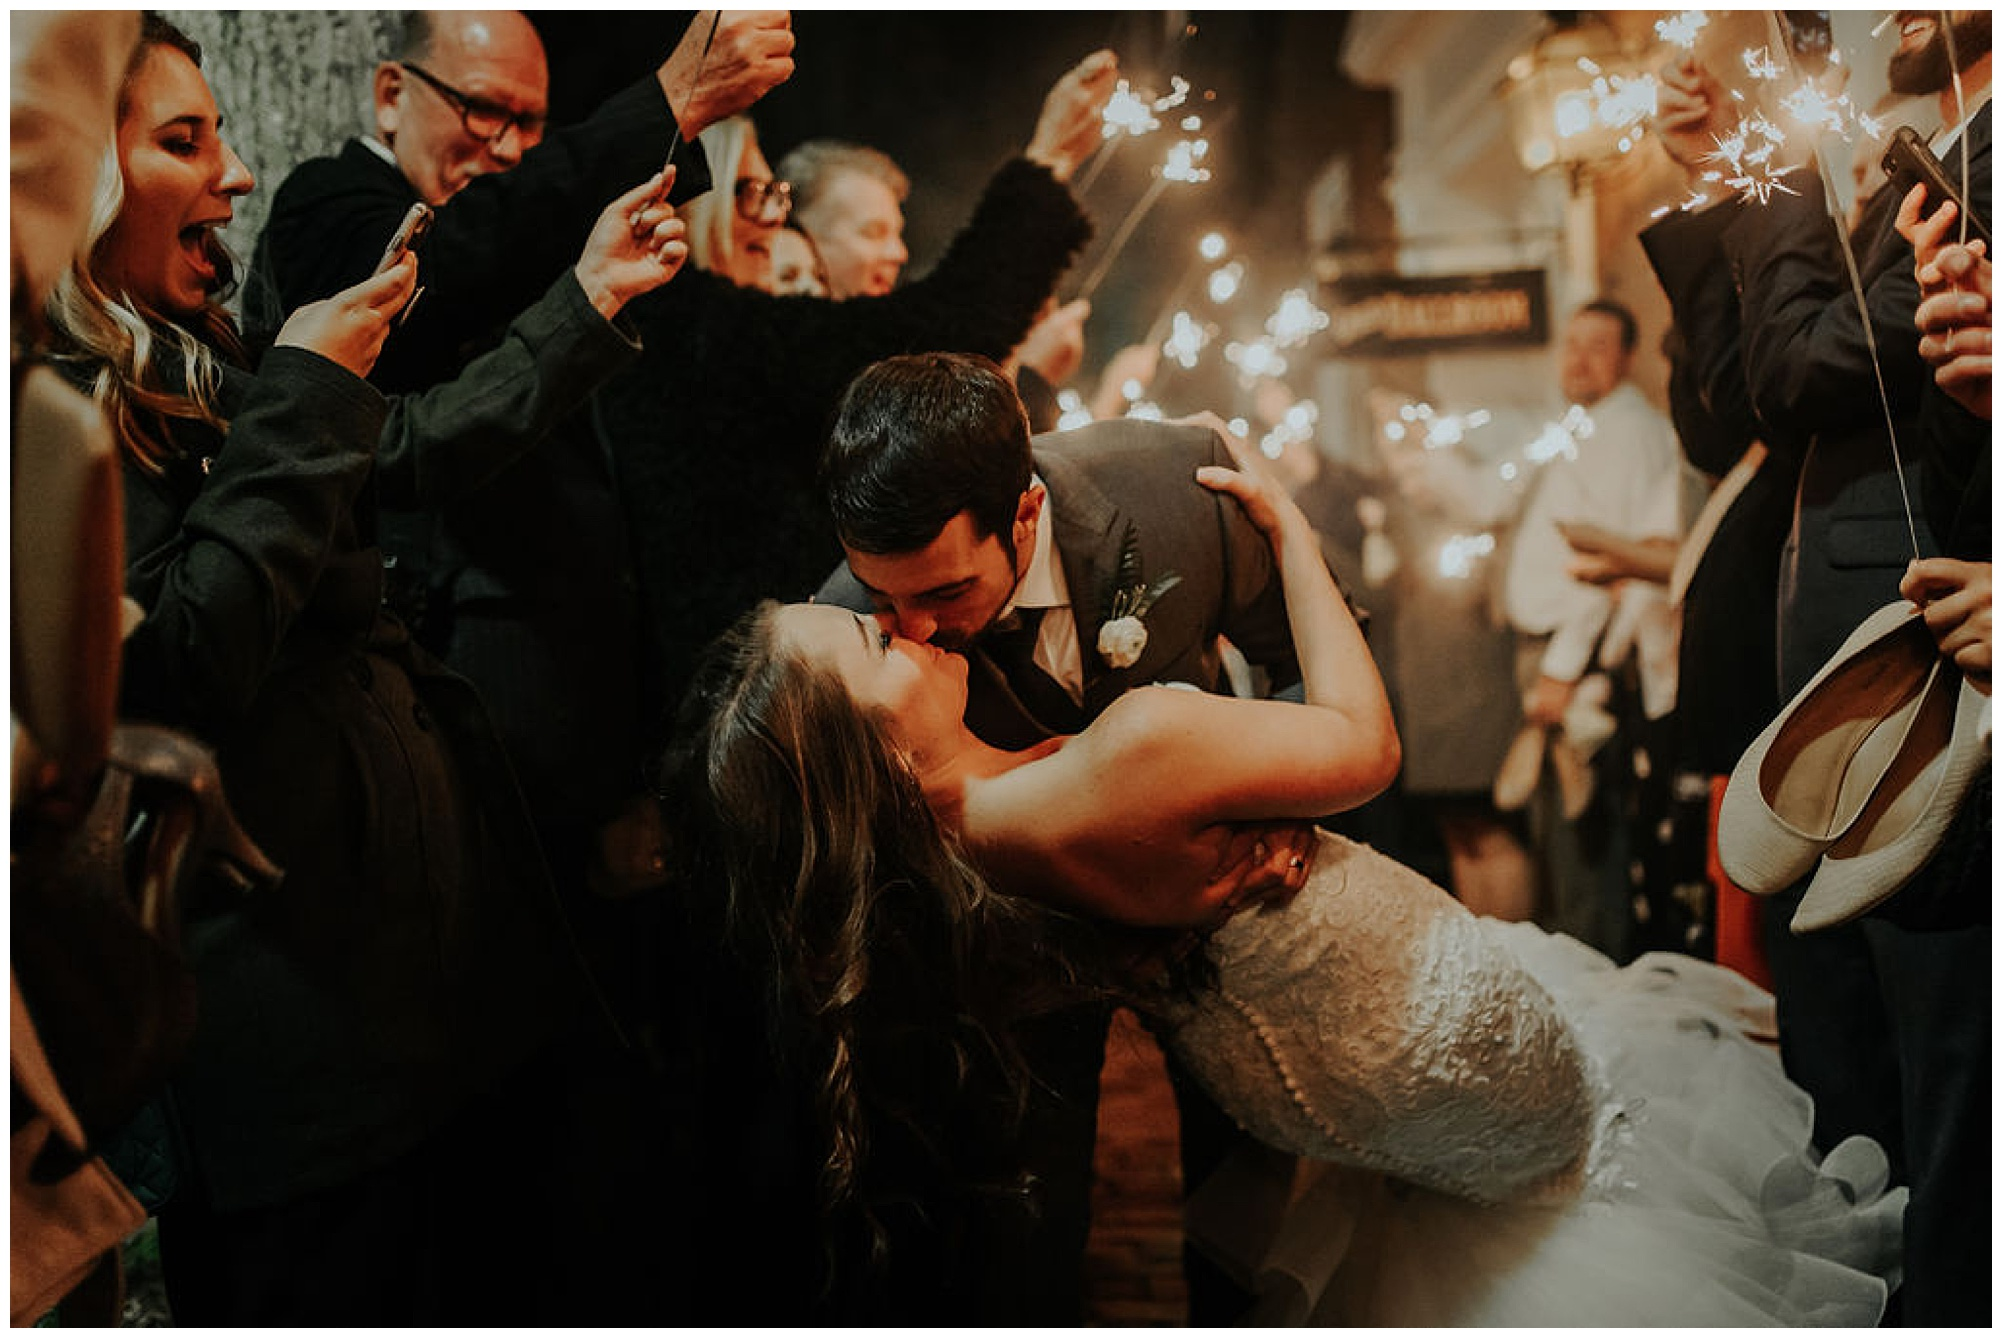 cue the confetti and fireworks for this autumn and fall wedding at the tidewater inn venue in easton maryland now featured on my eastern shore wedding. grand exit with sparklers at historic venue. intimate moody sultry romantic and totally classic.